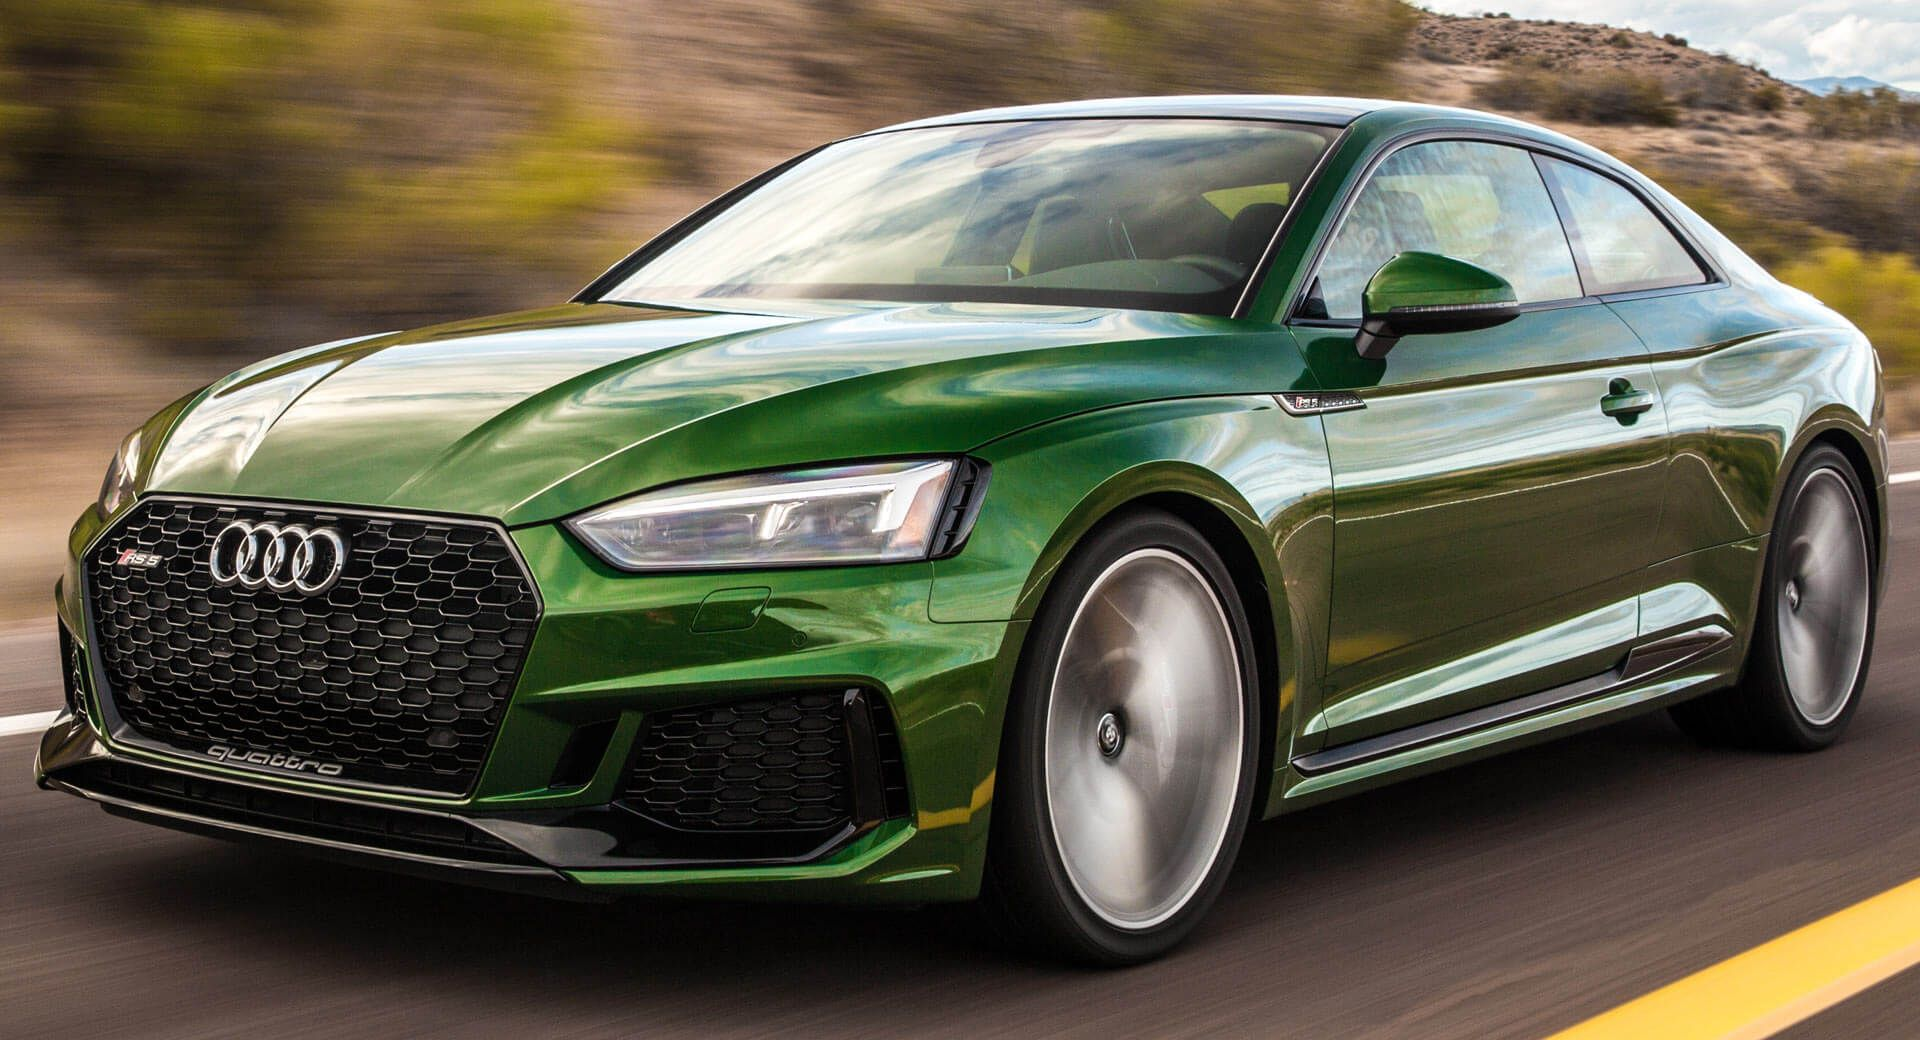 2018 Audi Rs5 Coupe Arrives In America For A Little Under 70 000 Carscoops Audi Rs5 Audi Rs5 Coupe